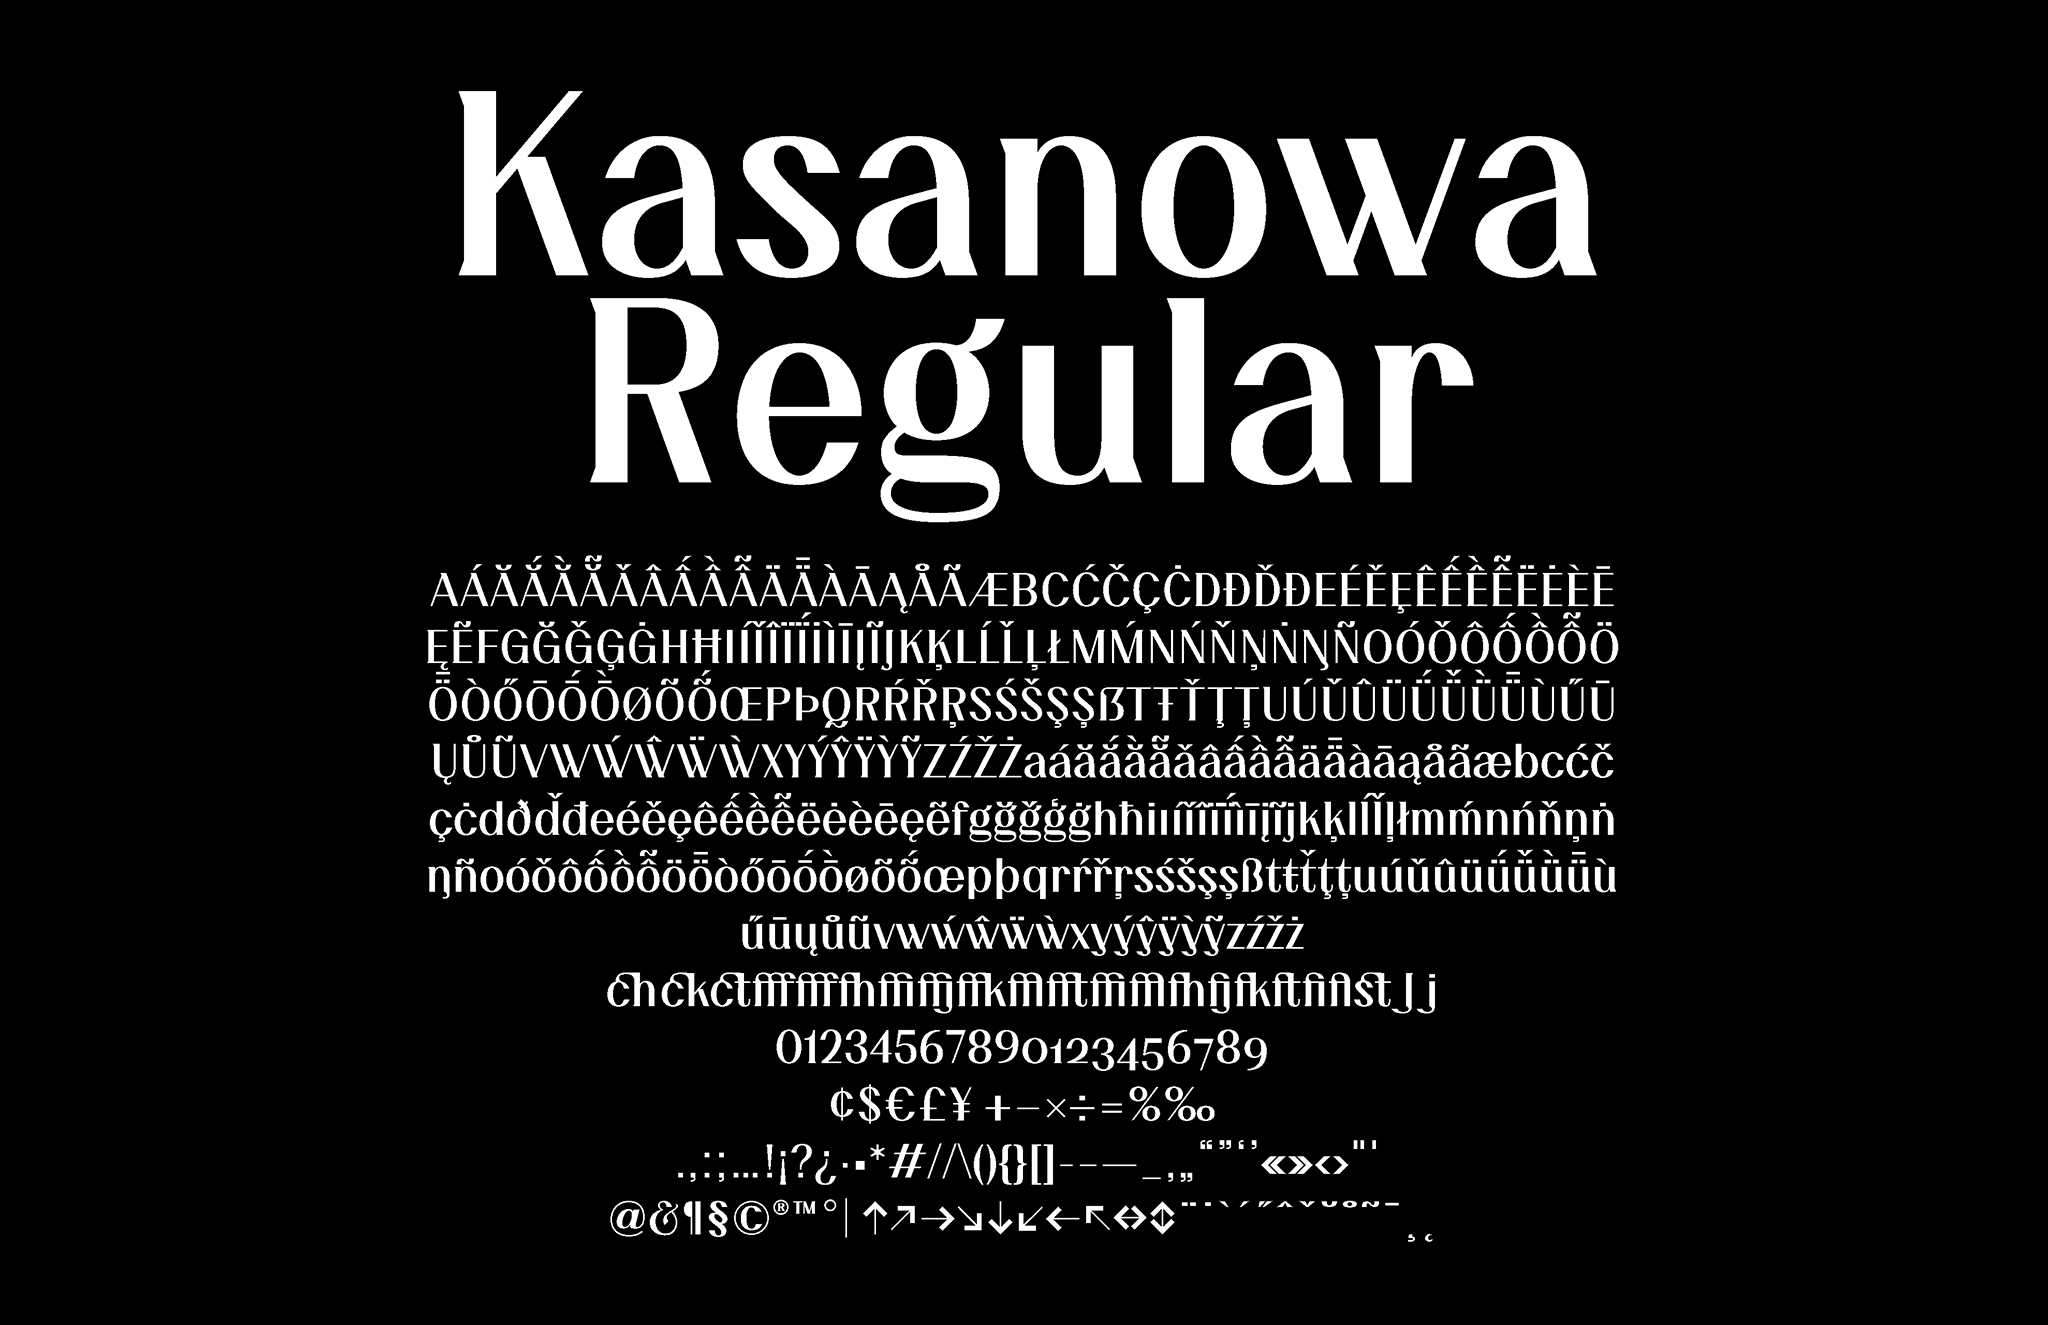 Kasanowa Regular Glyph Overview